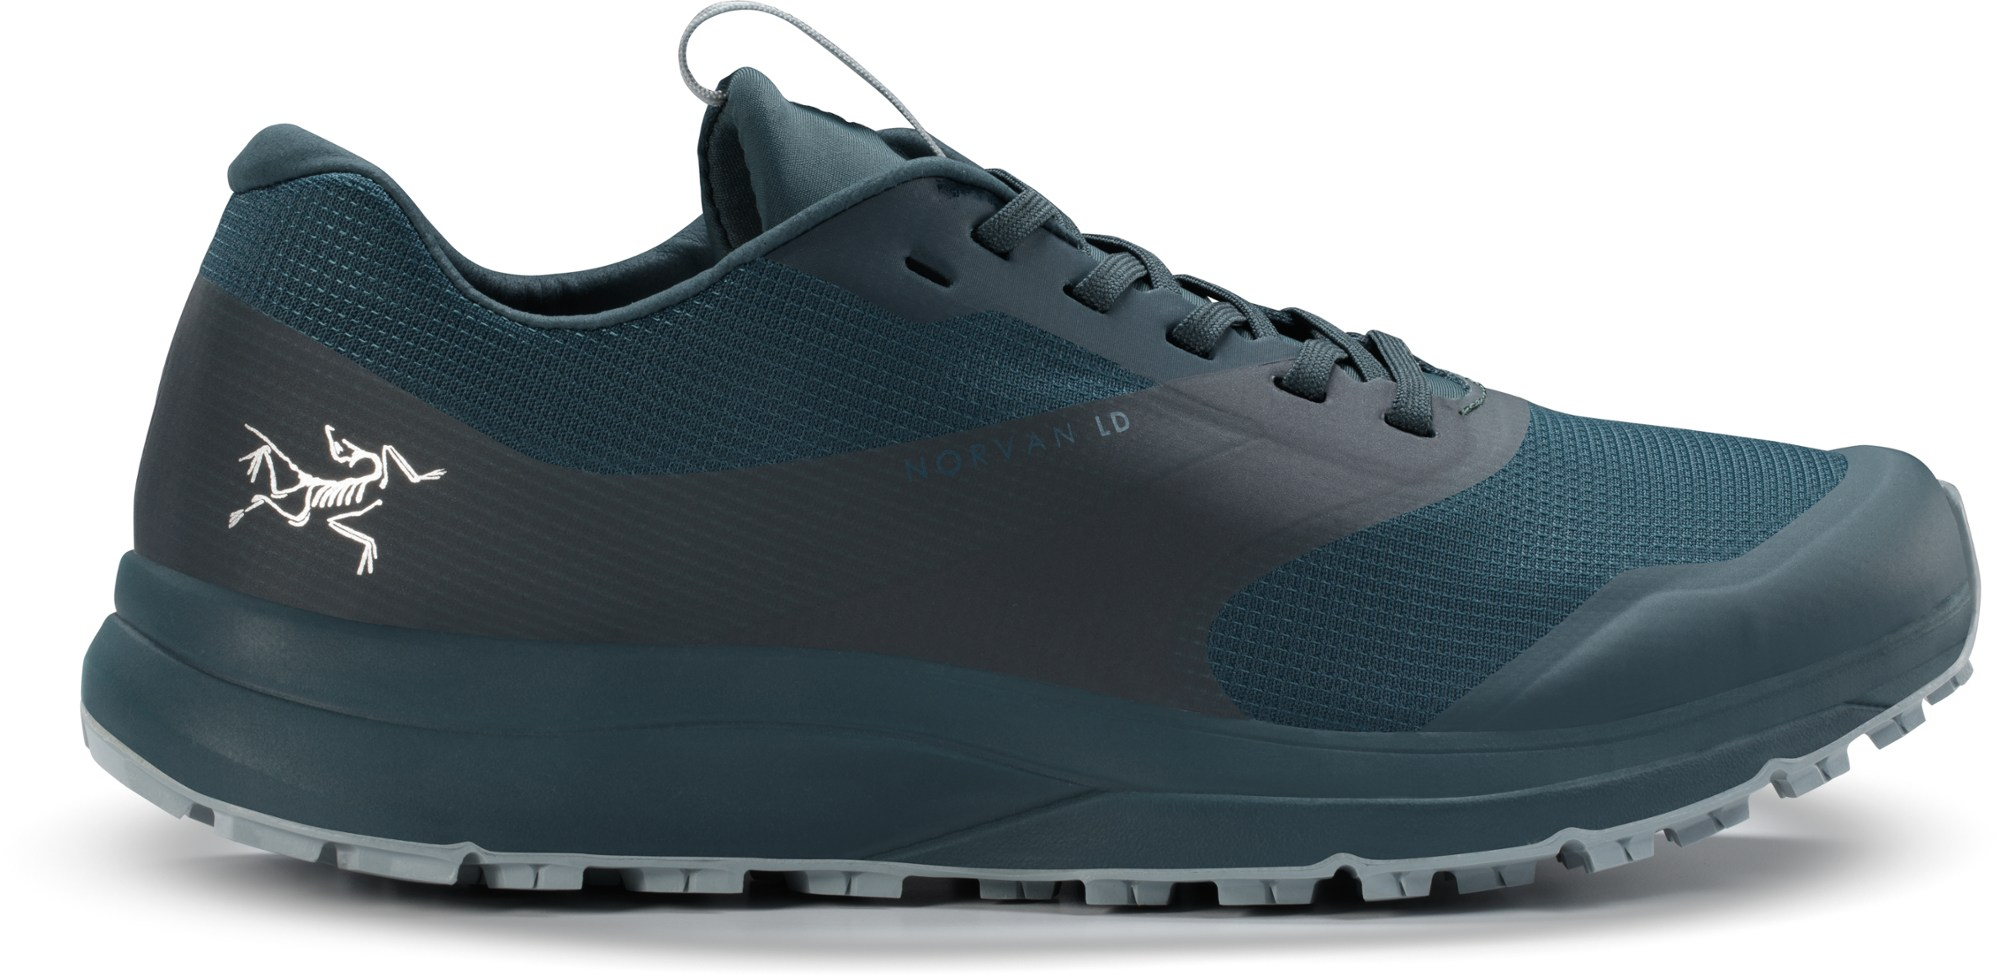 Arc'teryx Norvan LD Trail-Running Shoes - Men's